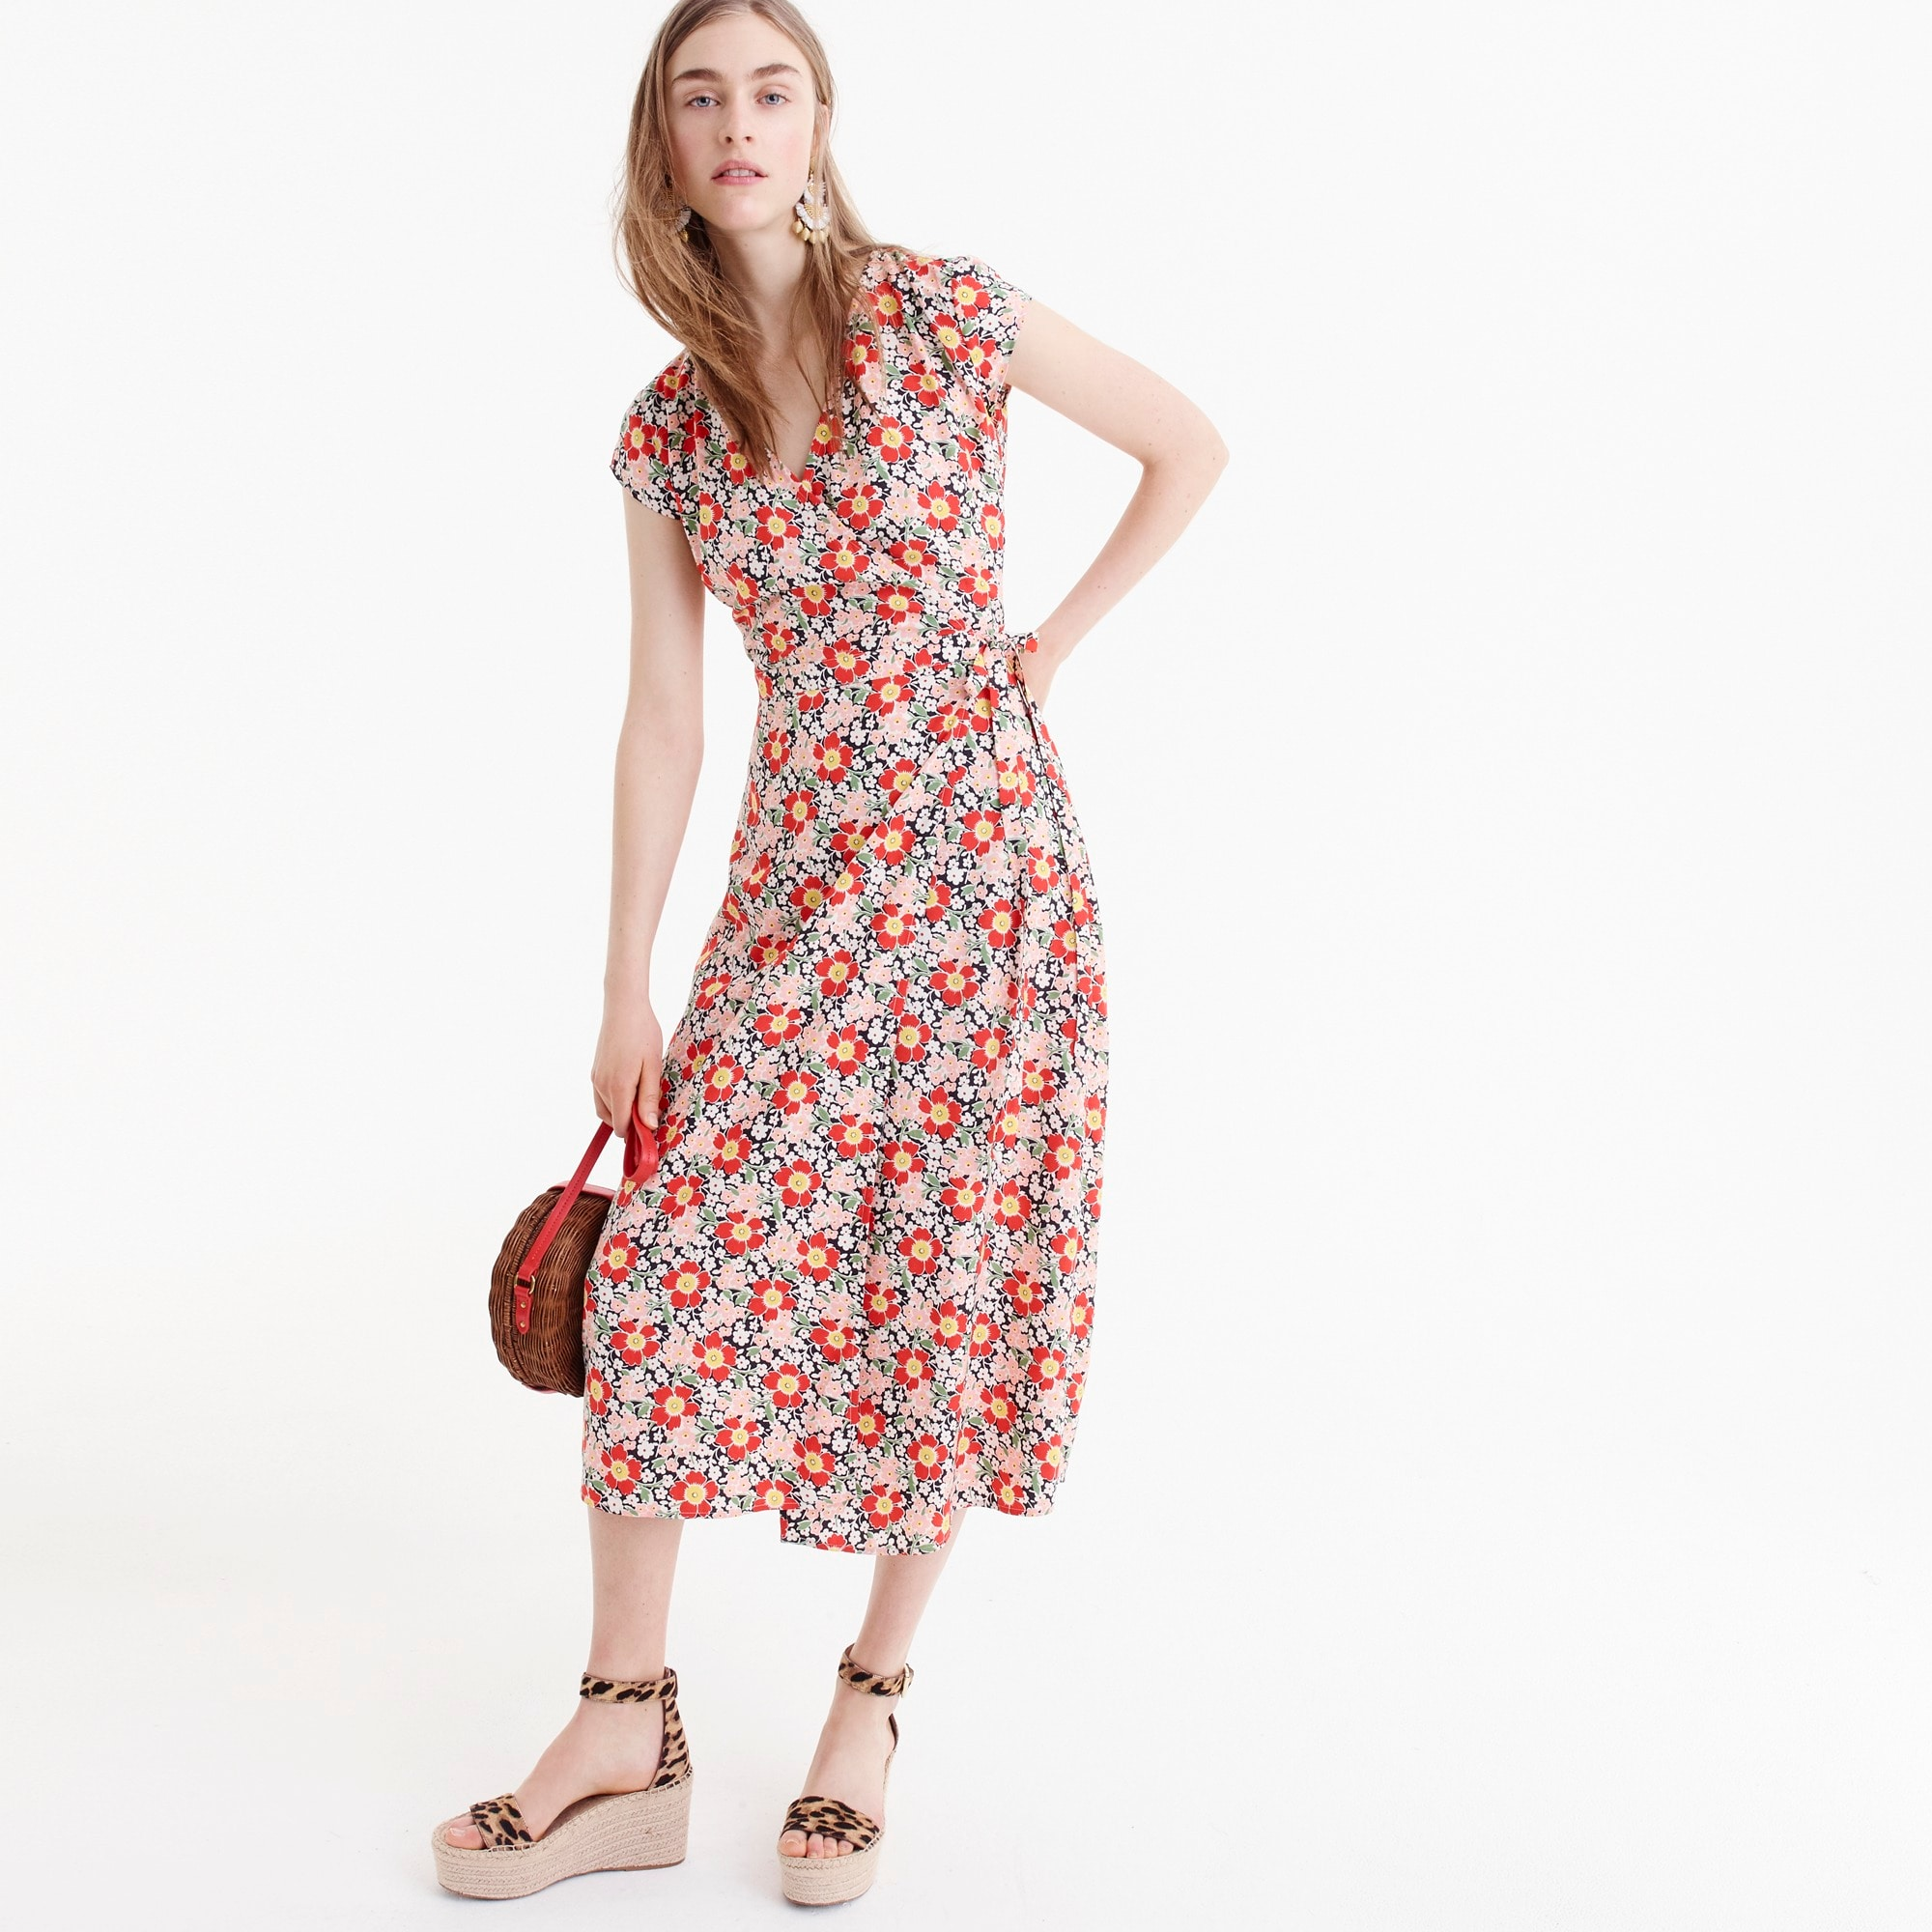 J.Crew Mercantile easy wrap dress in seventies floral women dresses c